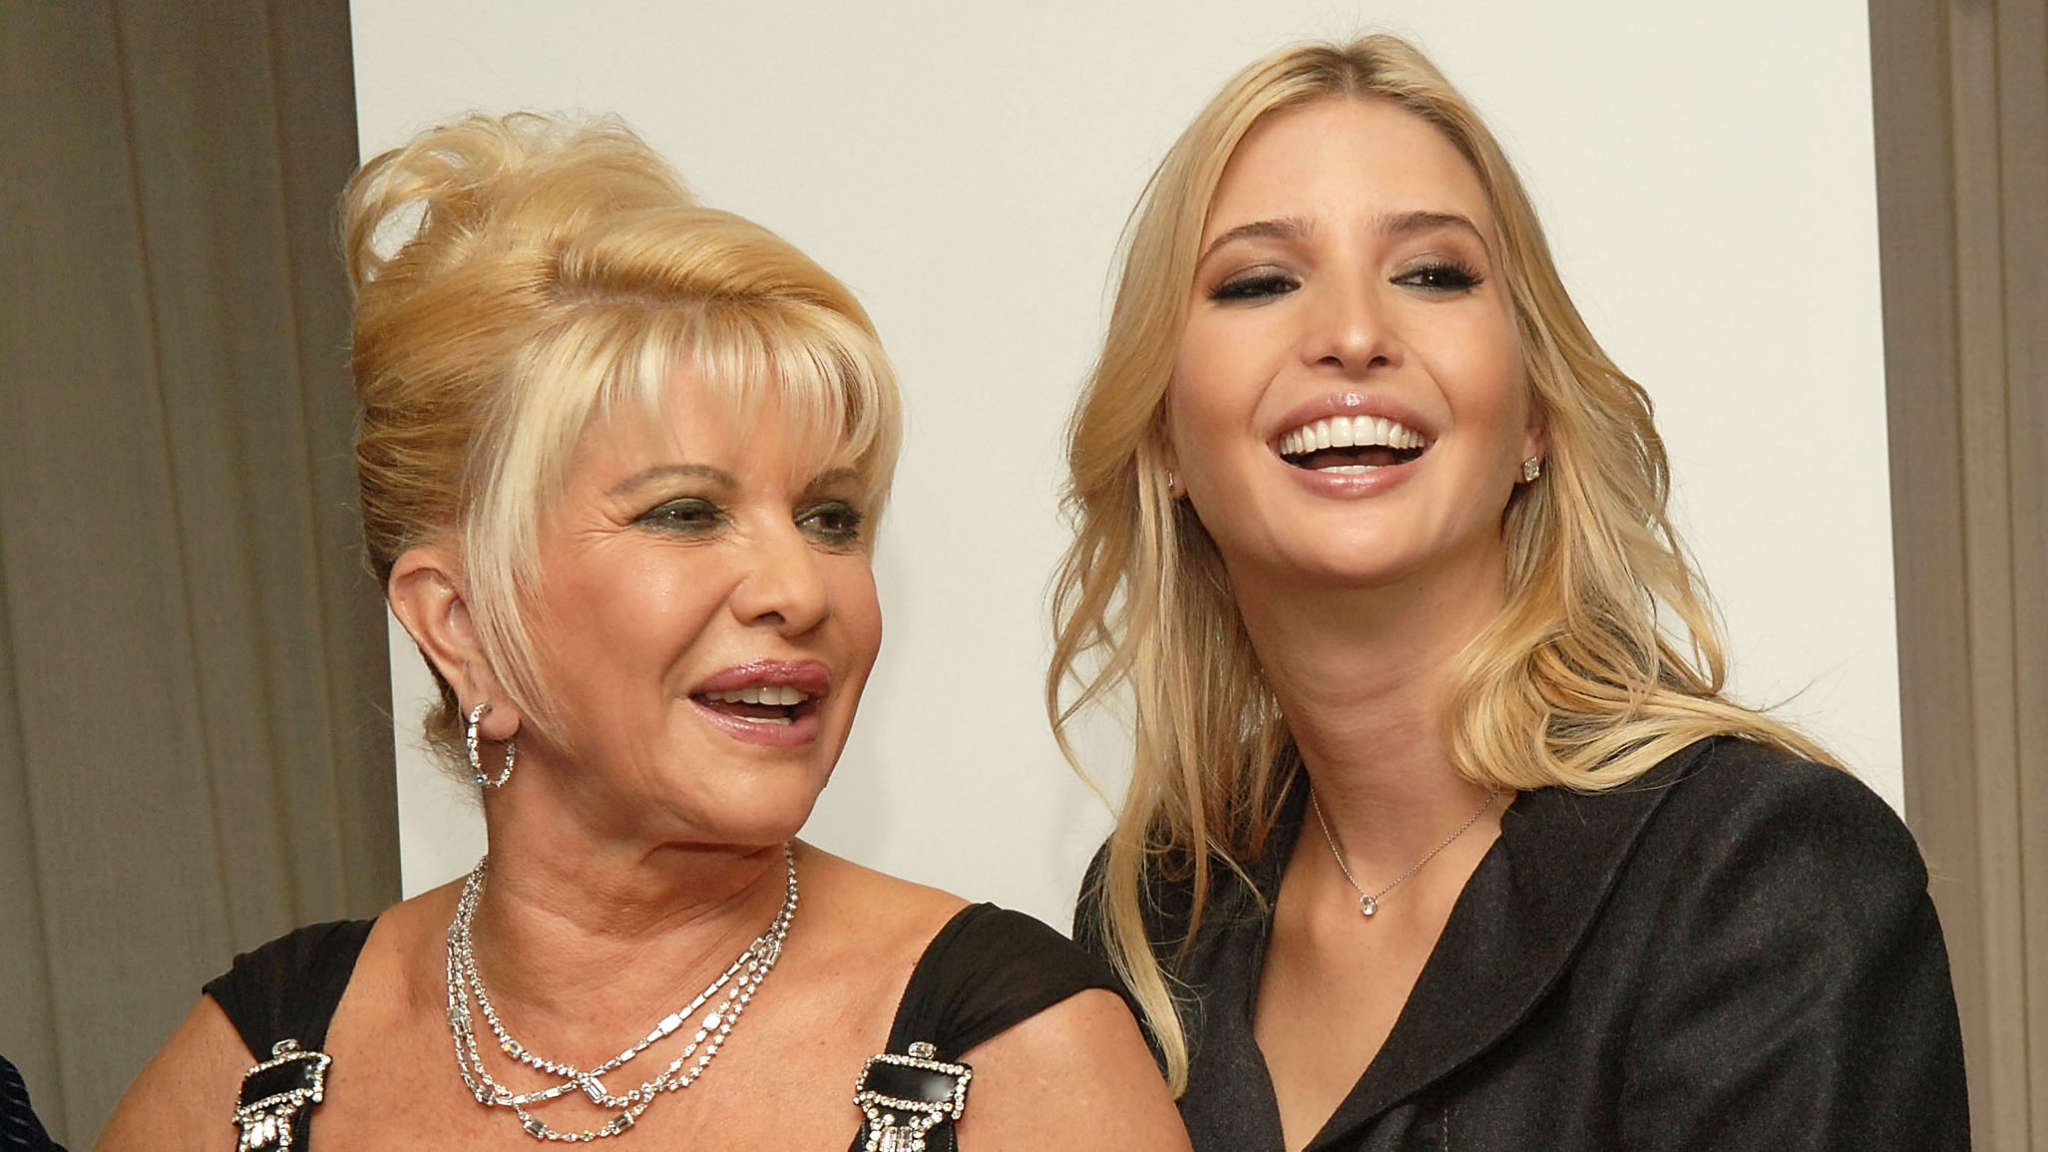 ivana-trump-says-daughter-ivanka-is-smart-and-beautiful-enough-to-become-the-first-female-president-one-day